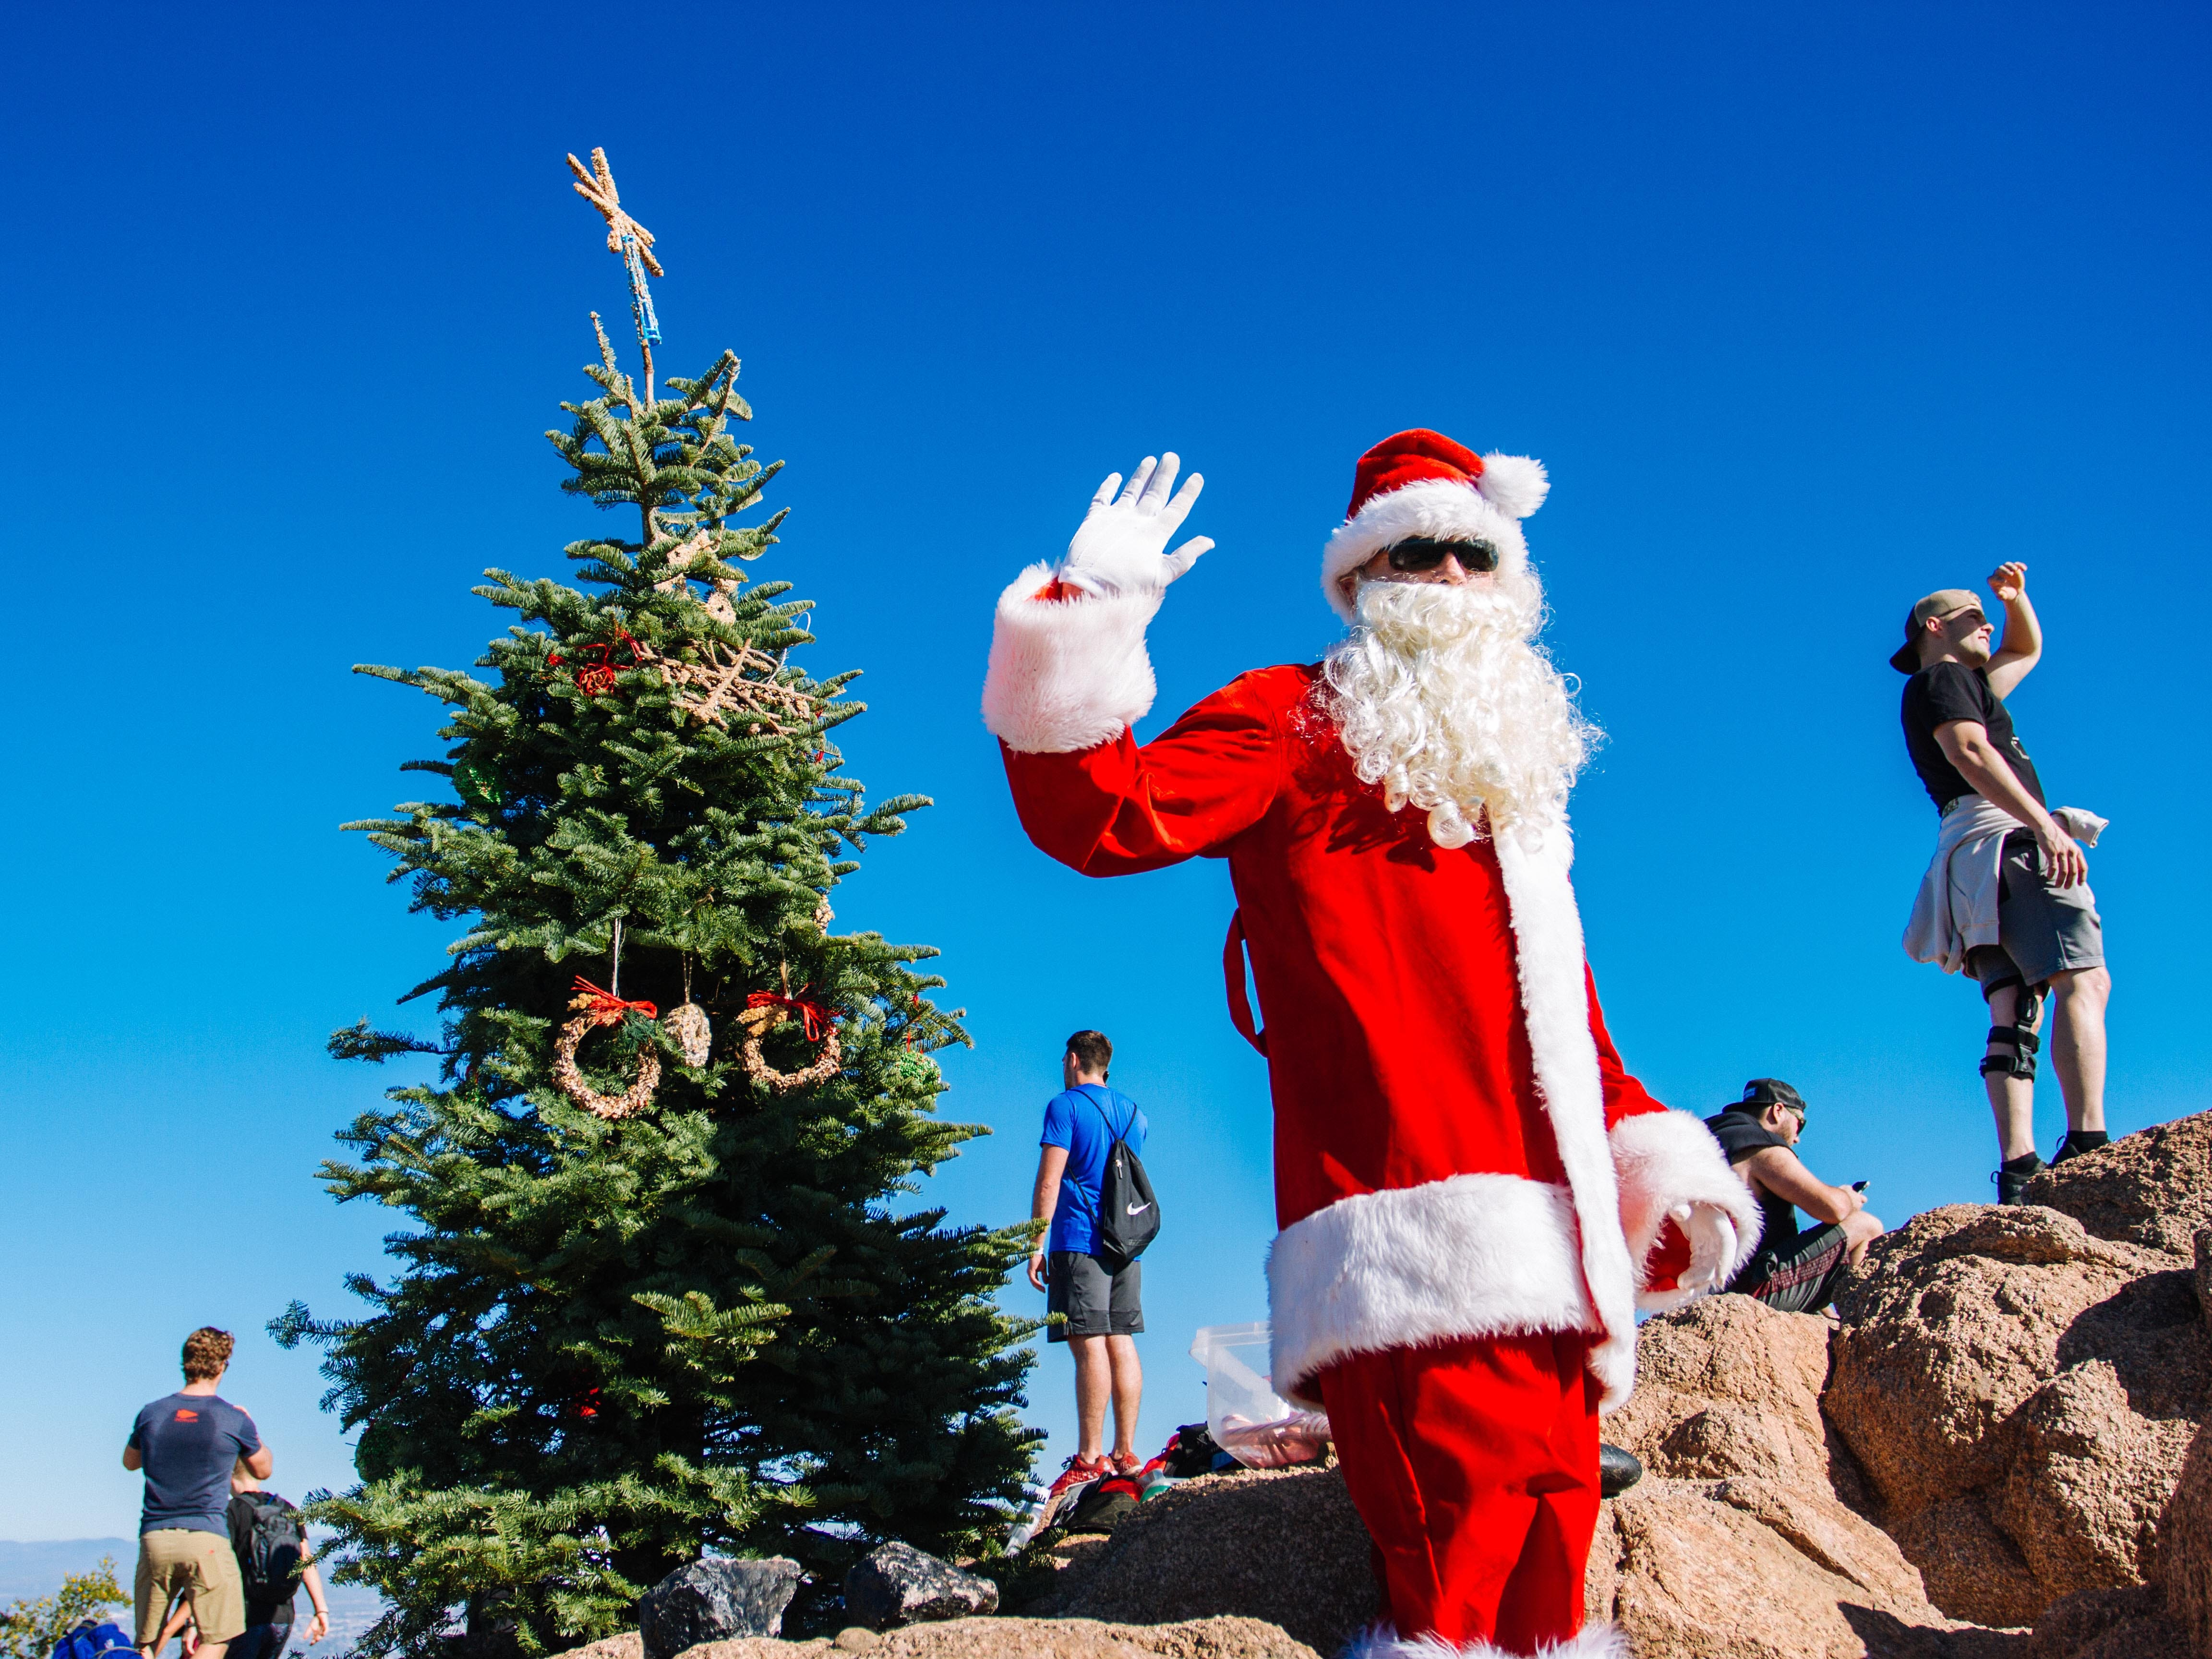 """John Cressey, the """"Camelback Santa,"""" poses with hikers at the top of Camelback Mountain in Phoenix, Ariz., Dec. 8, 2018."""